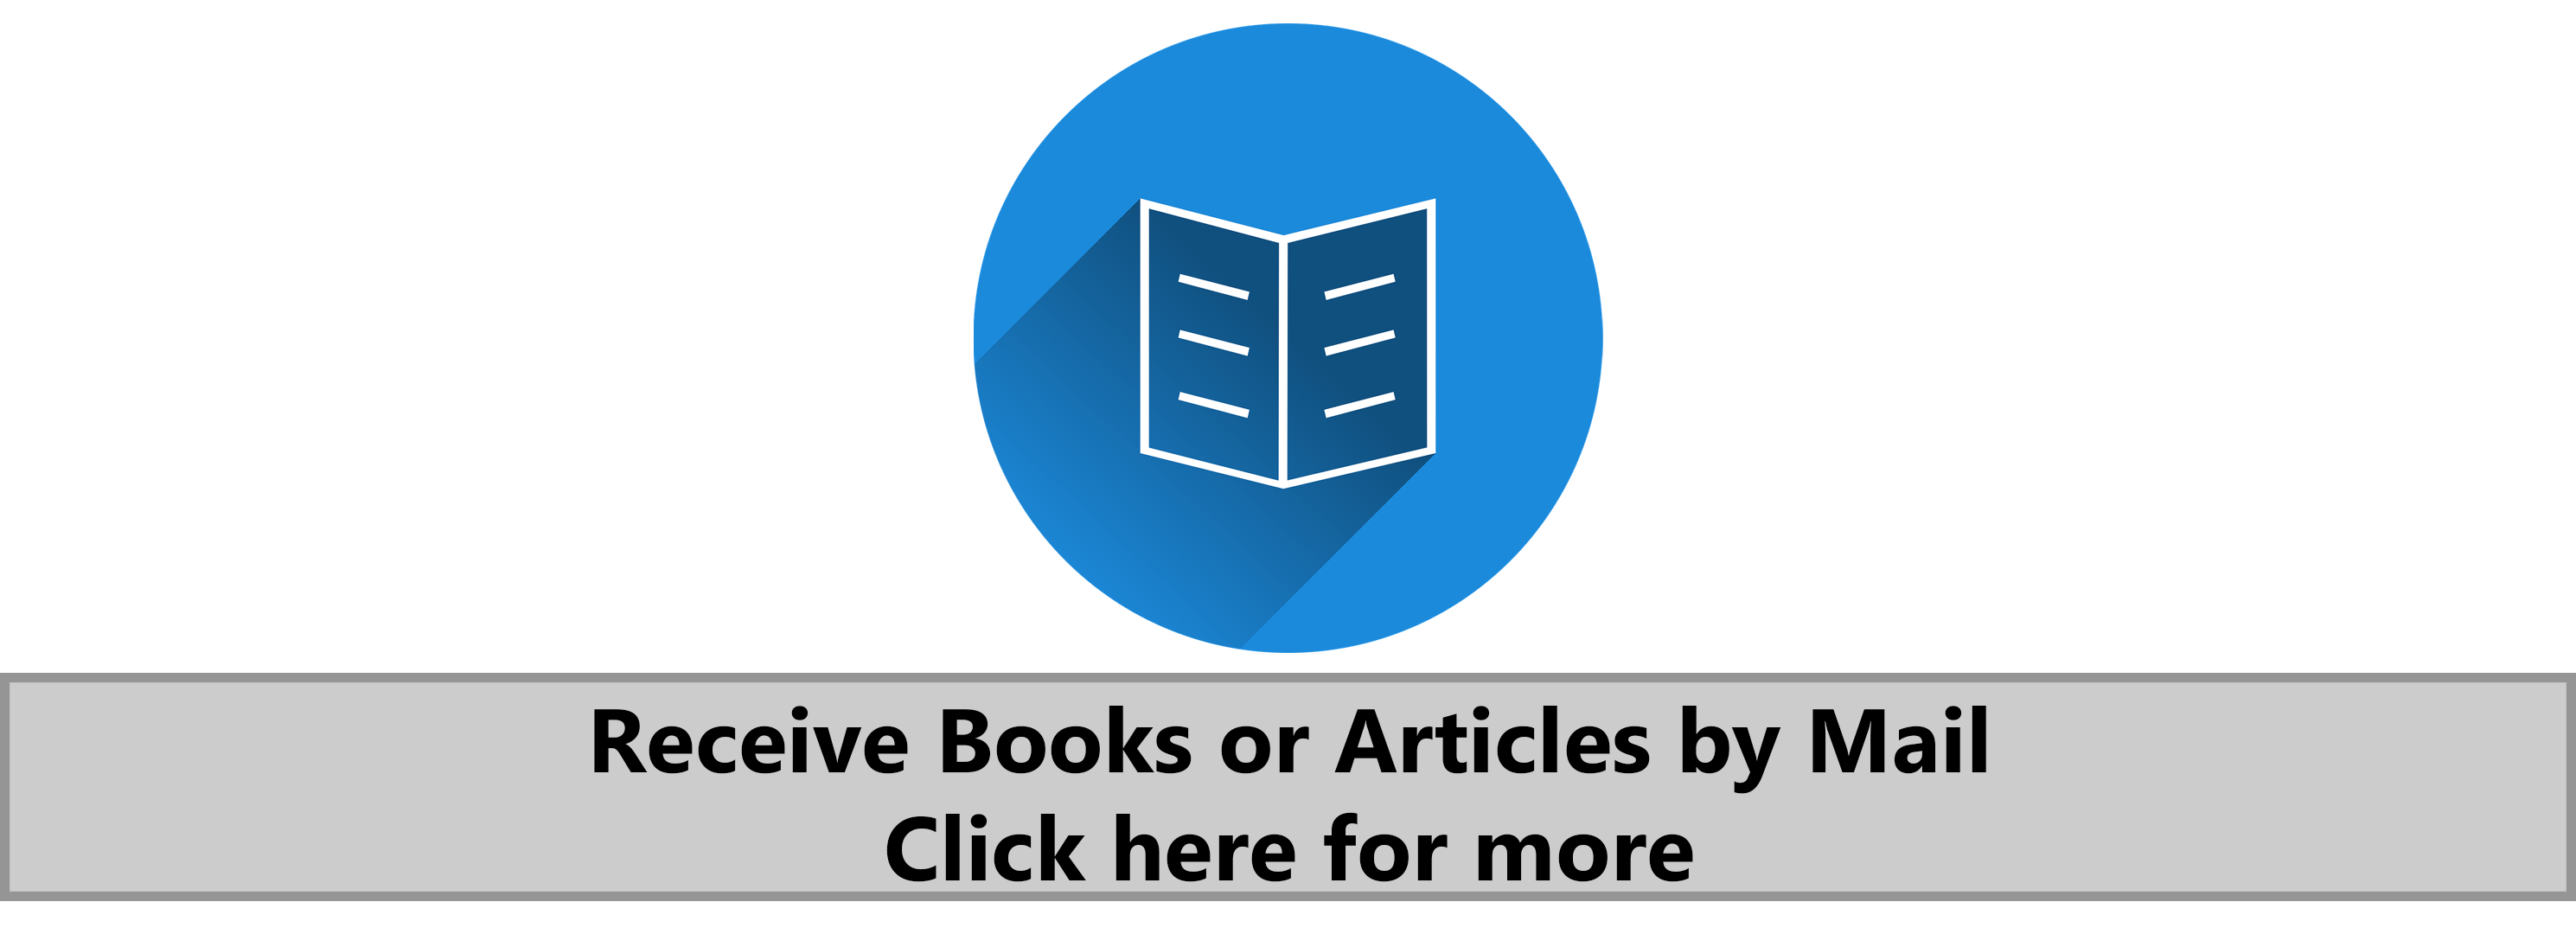 Receive books or articles by mail. Click here for more.